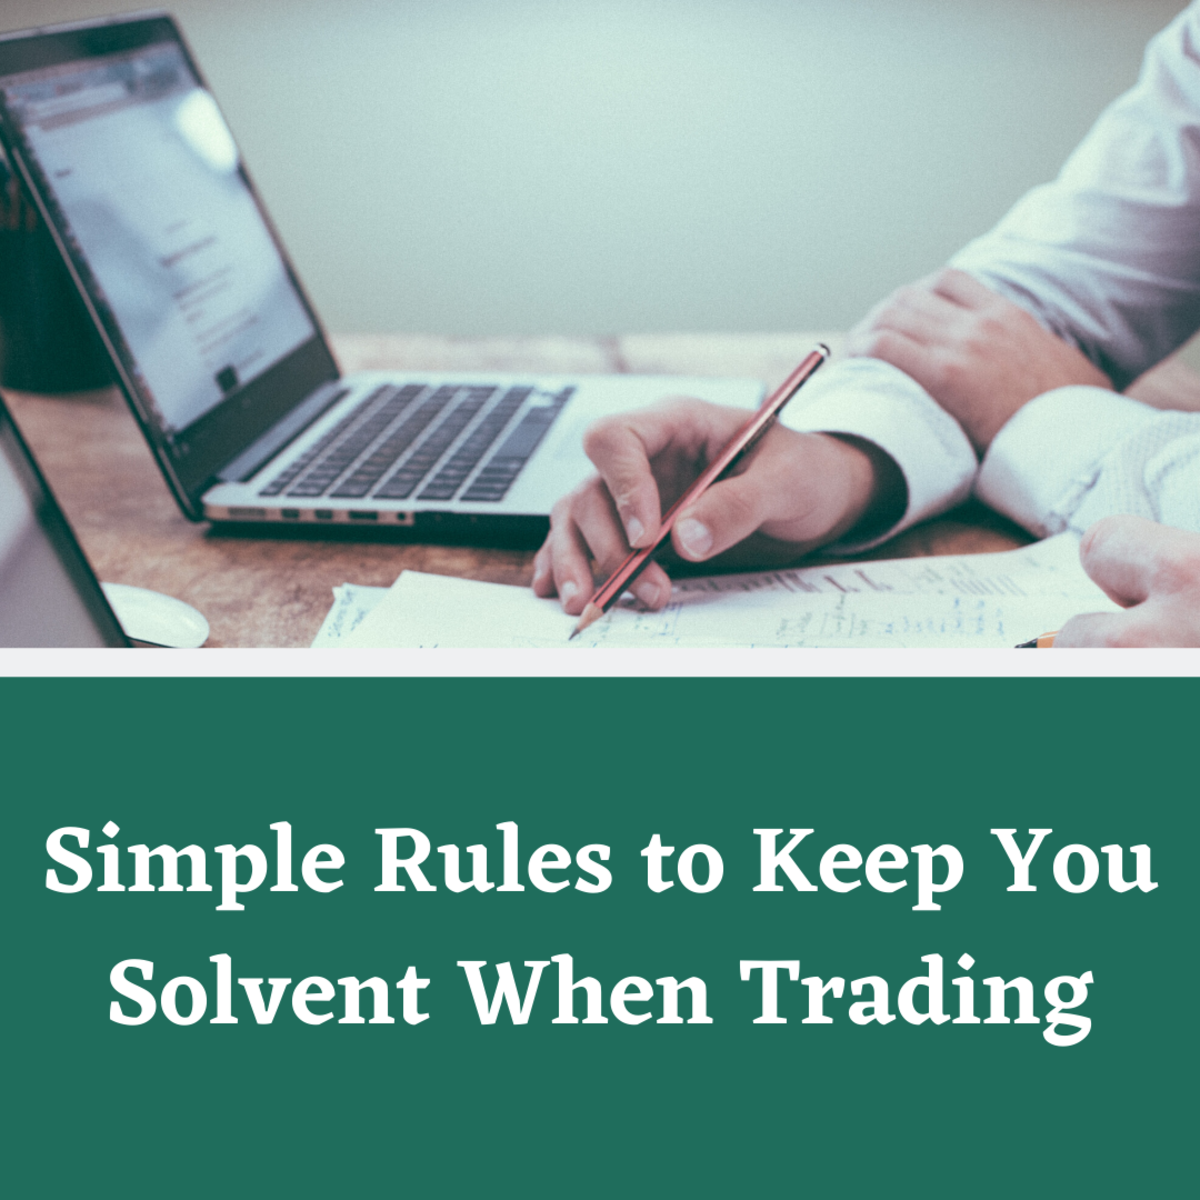 Some Simple Rules to Keep You Solvent When Trading